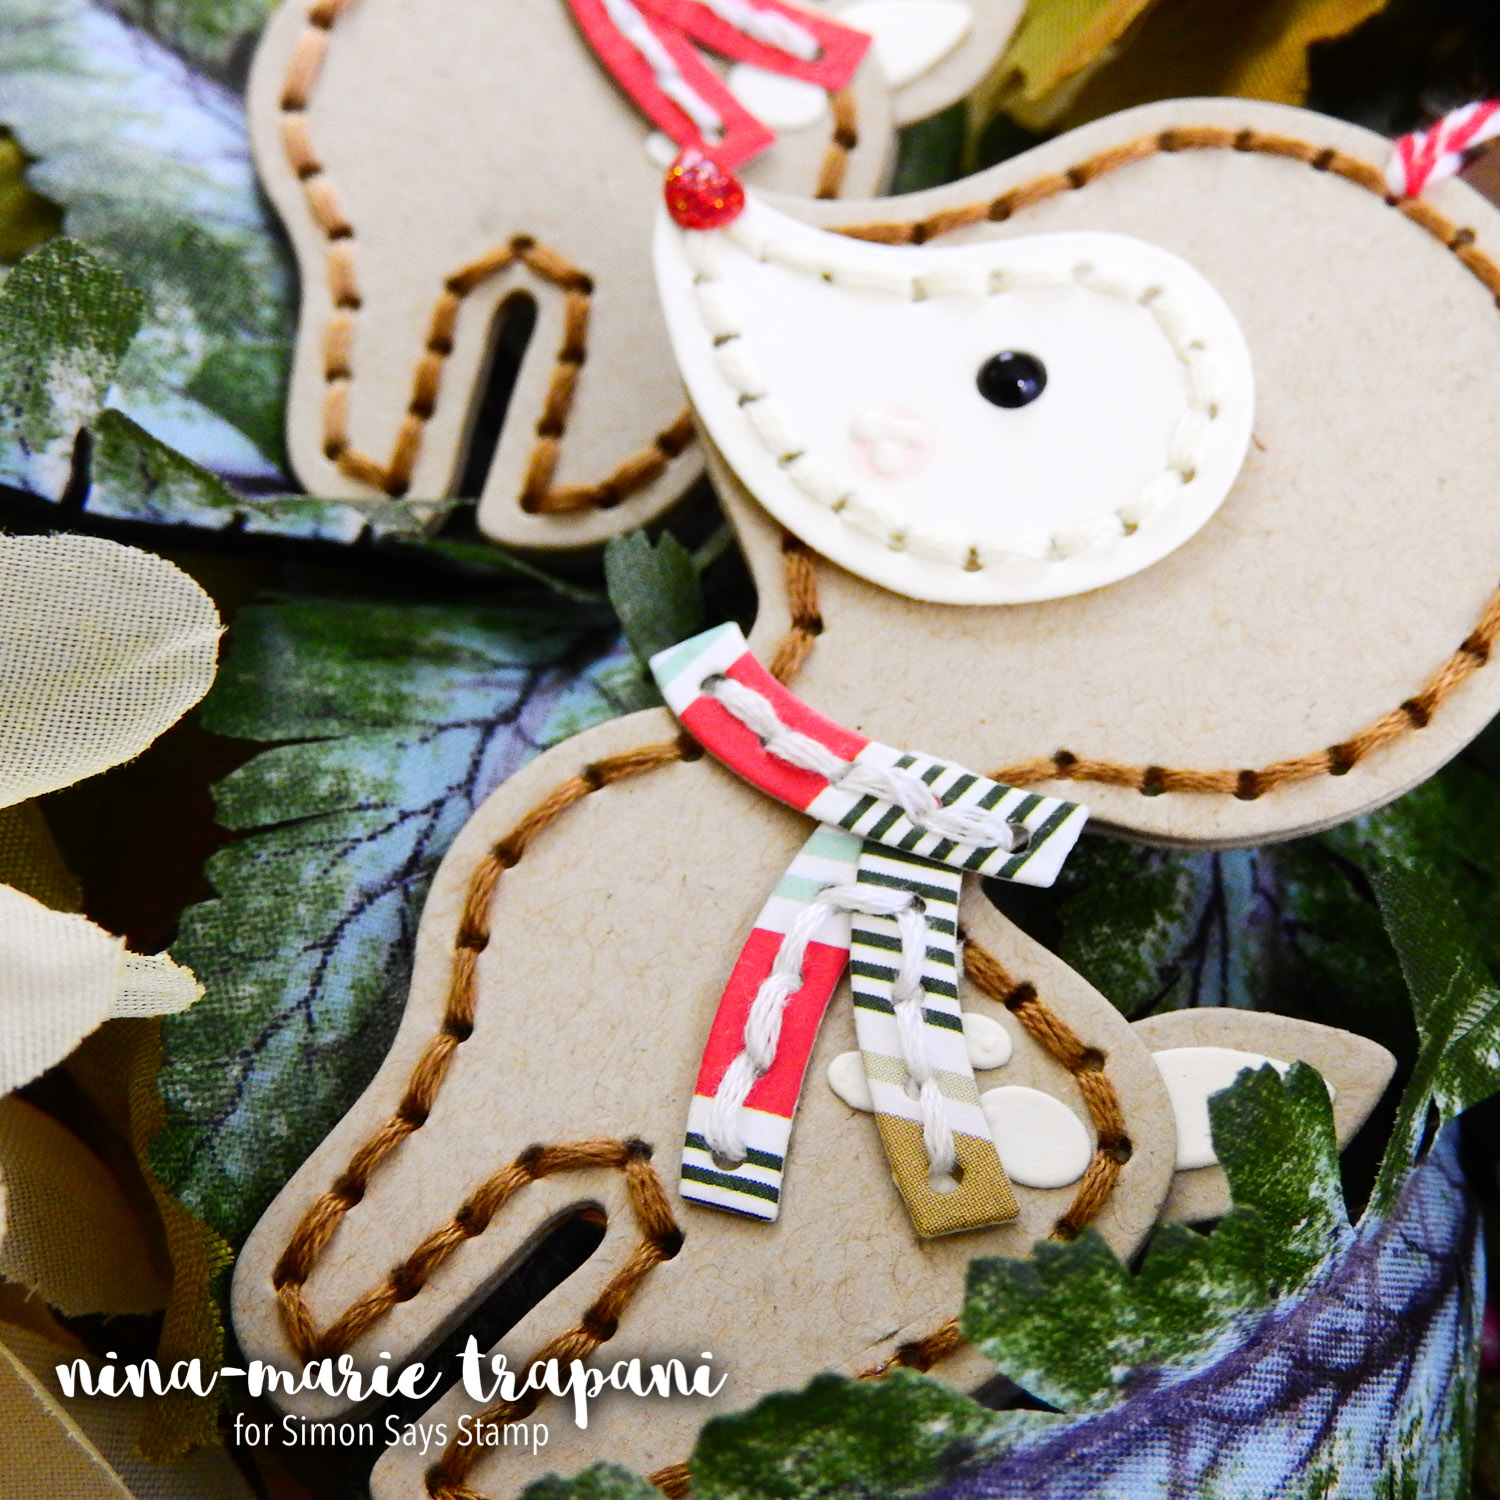 Kindness Day Handmade Paper Ornament Gift Idea | Nina-Marie Design